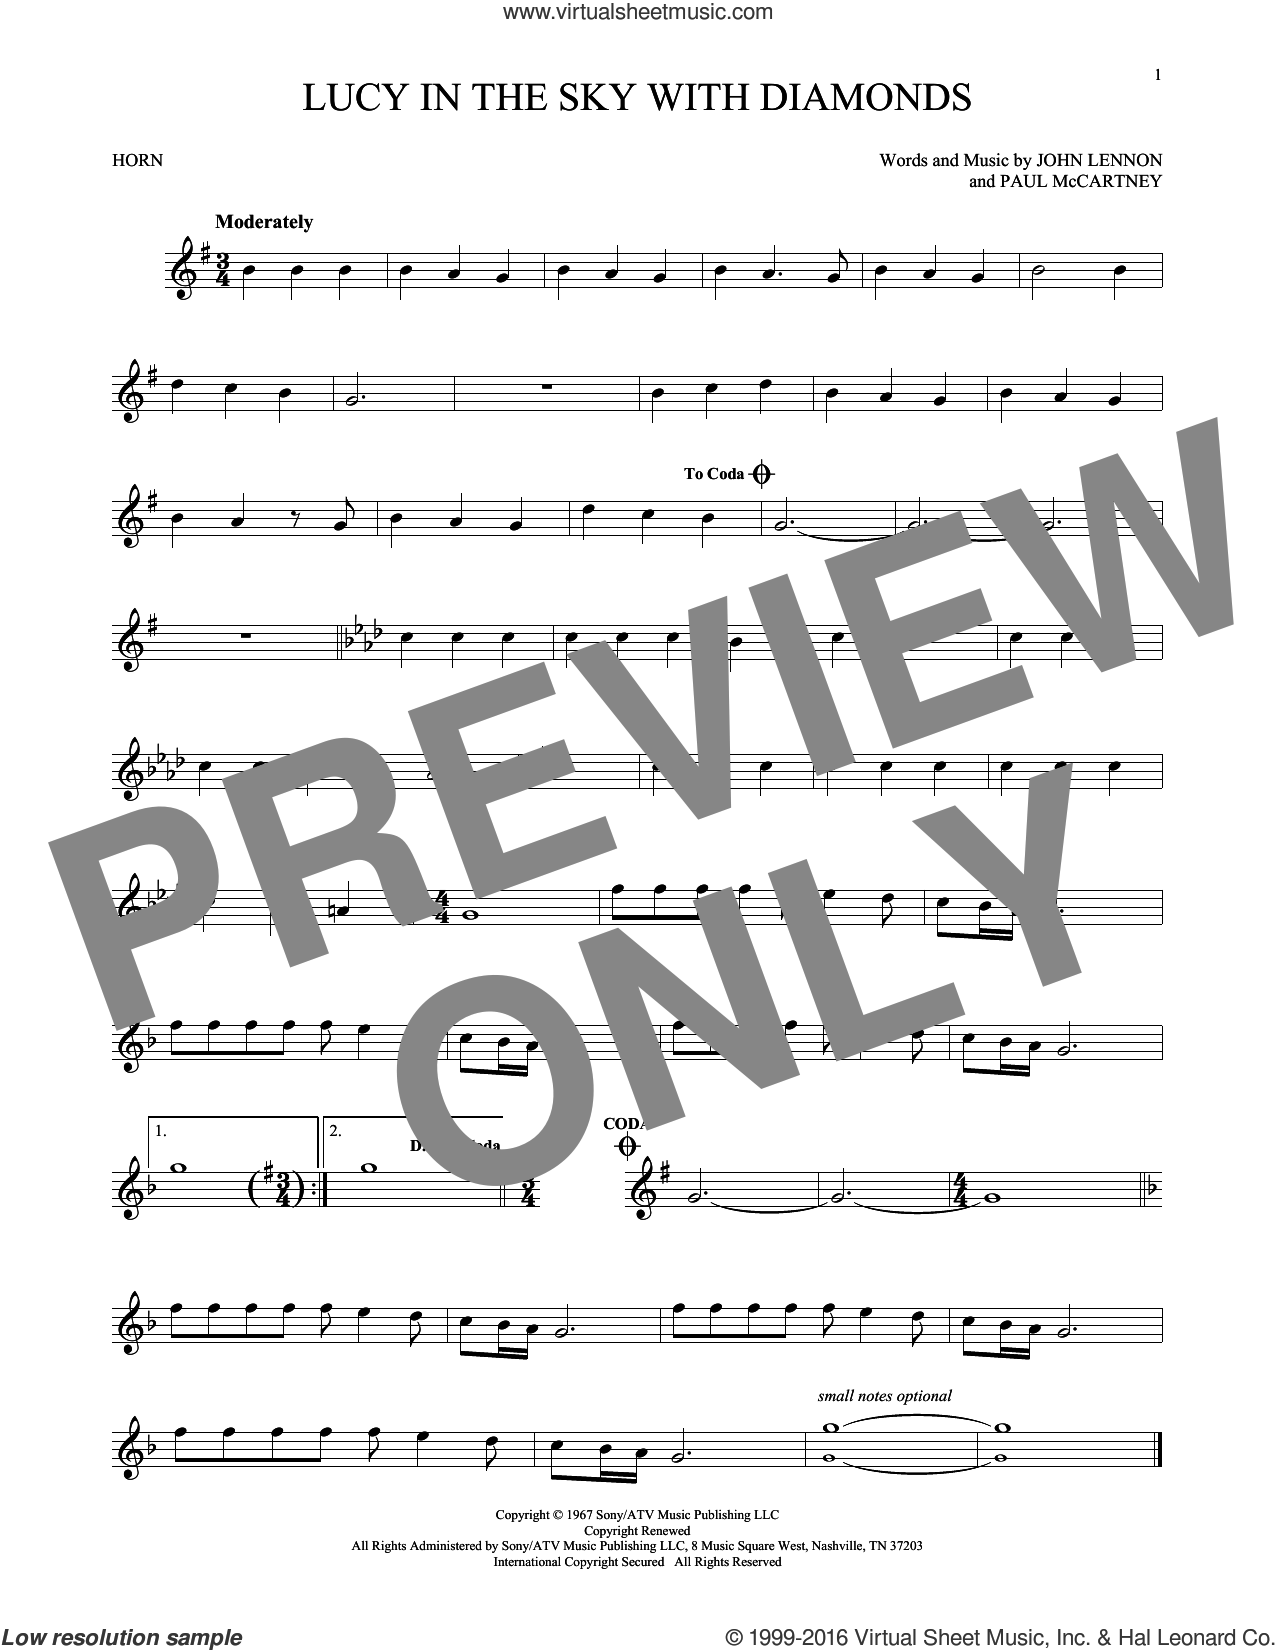 Lucy In The Sky With Diamonds sheet music for horn solo by The Beatles, Elton John, John Lennon and Paul McCartney, intermediate skill level